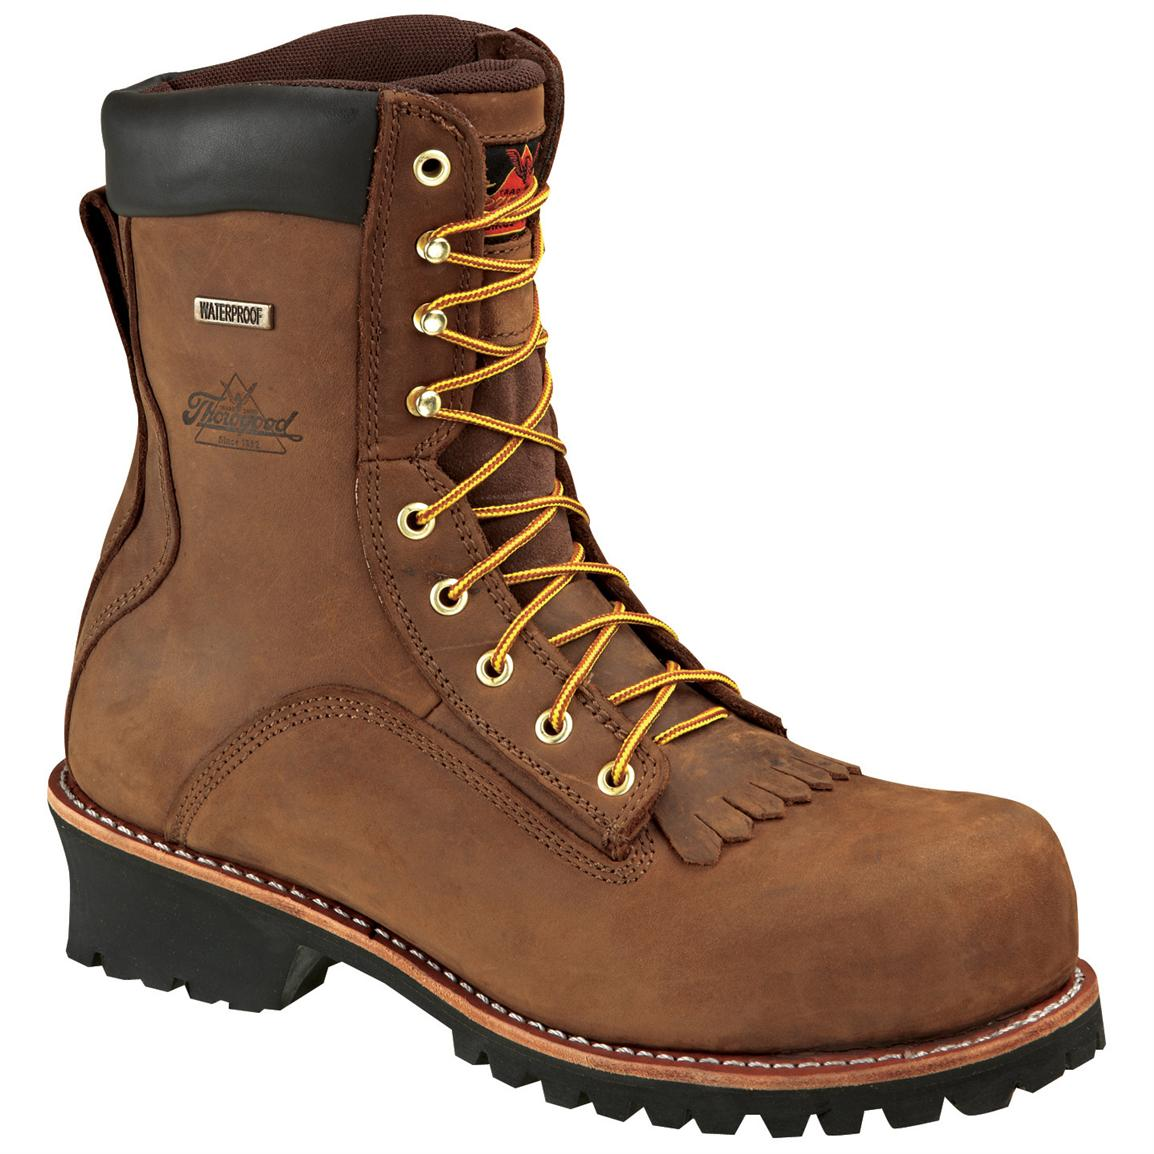 Men's Thorogood® 8 inch Waterproof Composite Toe Logger Work Boots, Brown